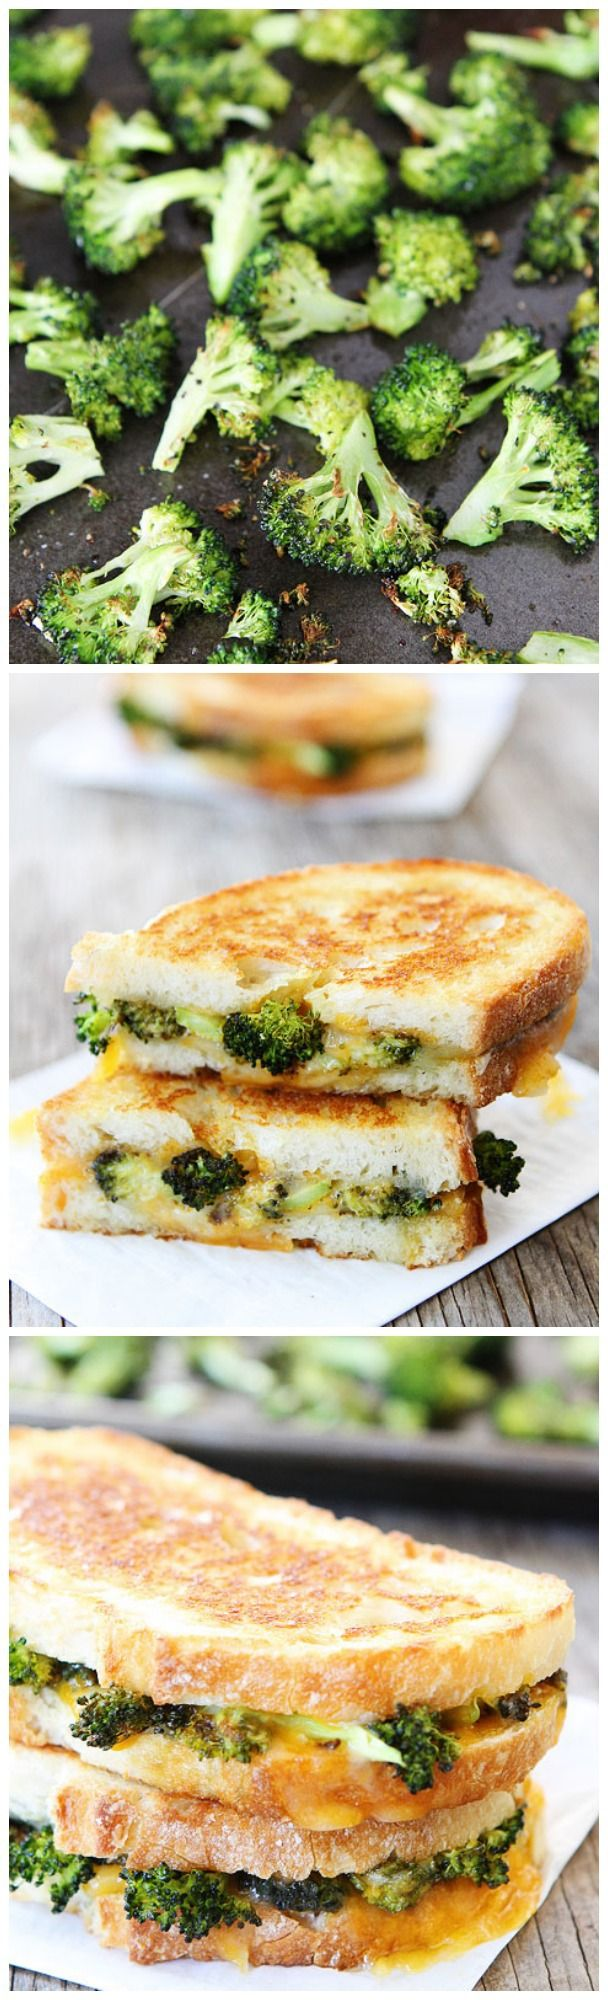 Roasted Broccoli Grilled Cheese Sandwich: A tasty way to get kids (or grownups!) to eat more veggies! | With Conshy bread of course! #bestbread